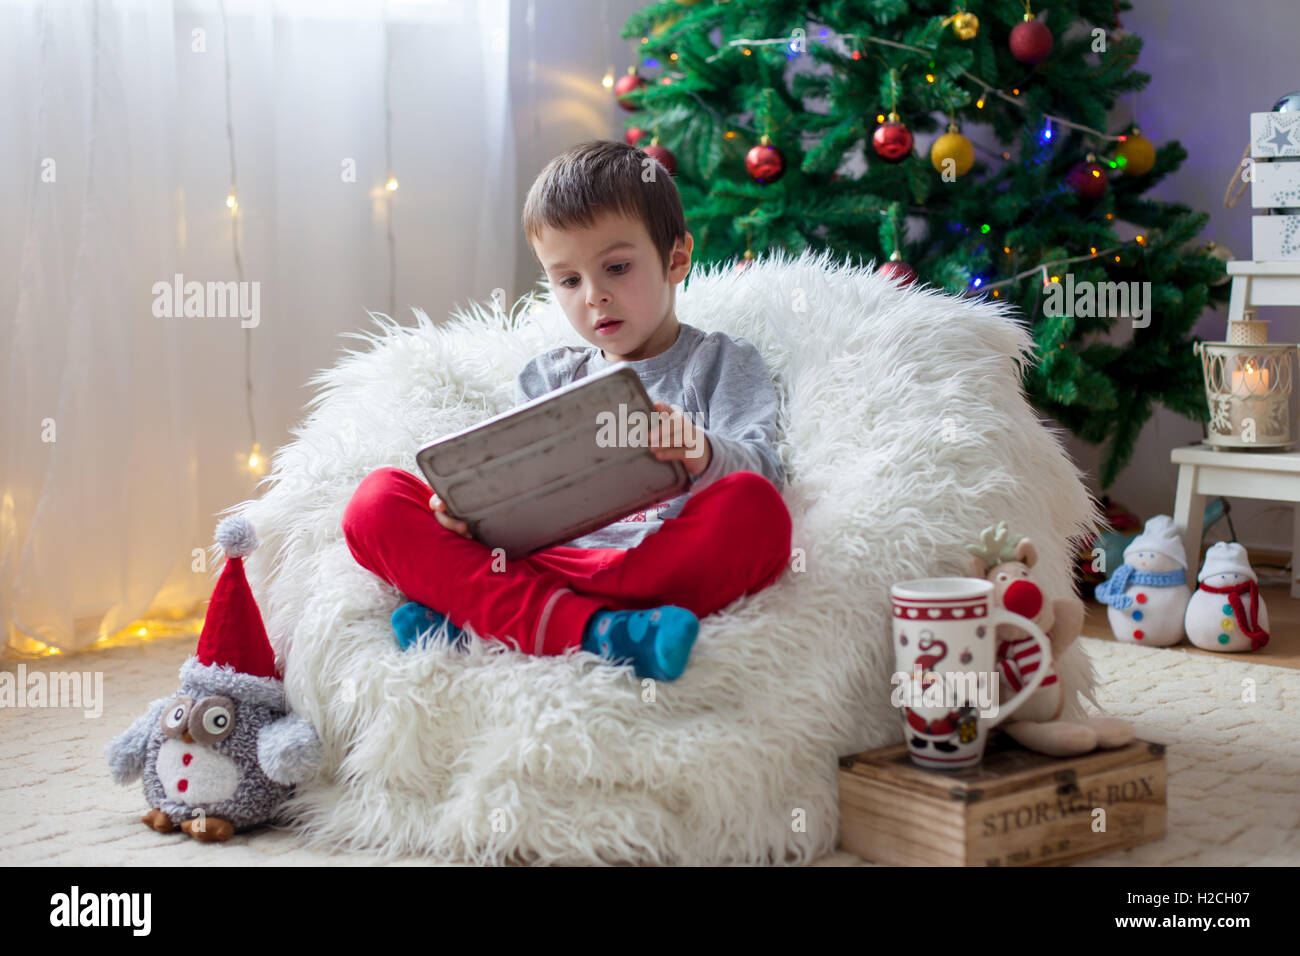 Cute little sick boy, sitting on bean bag, playing on tablet at home - Stock Image